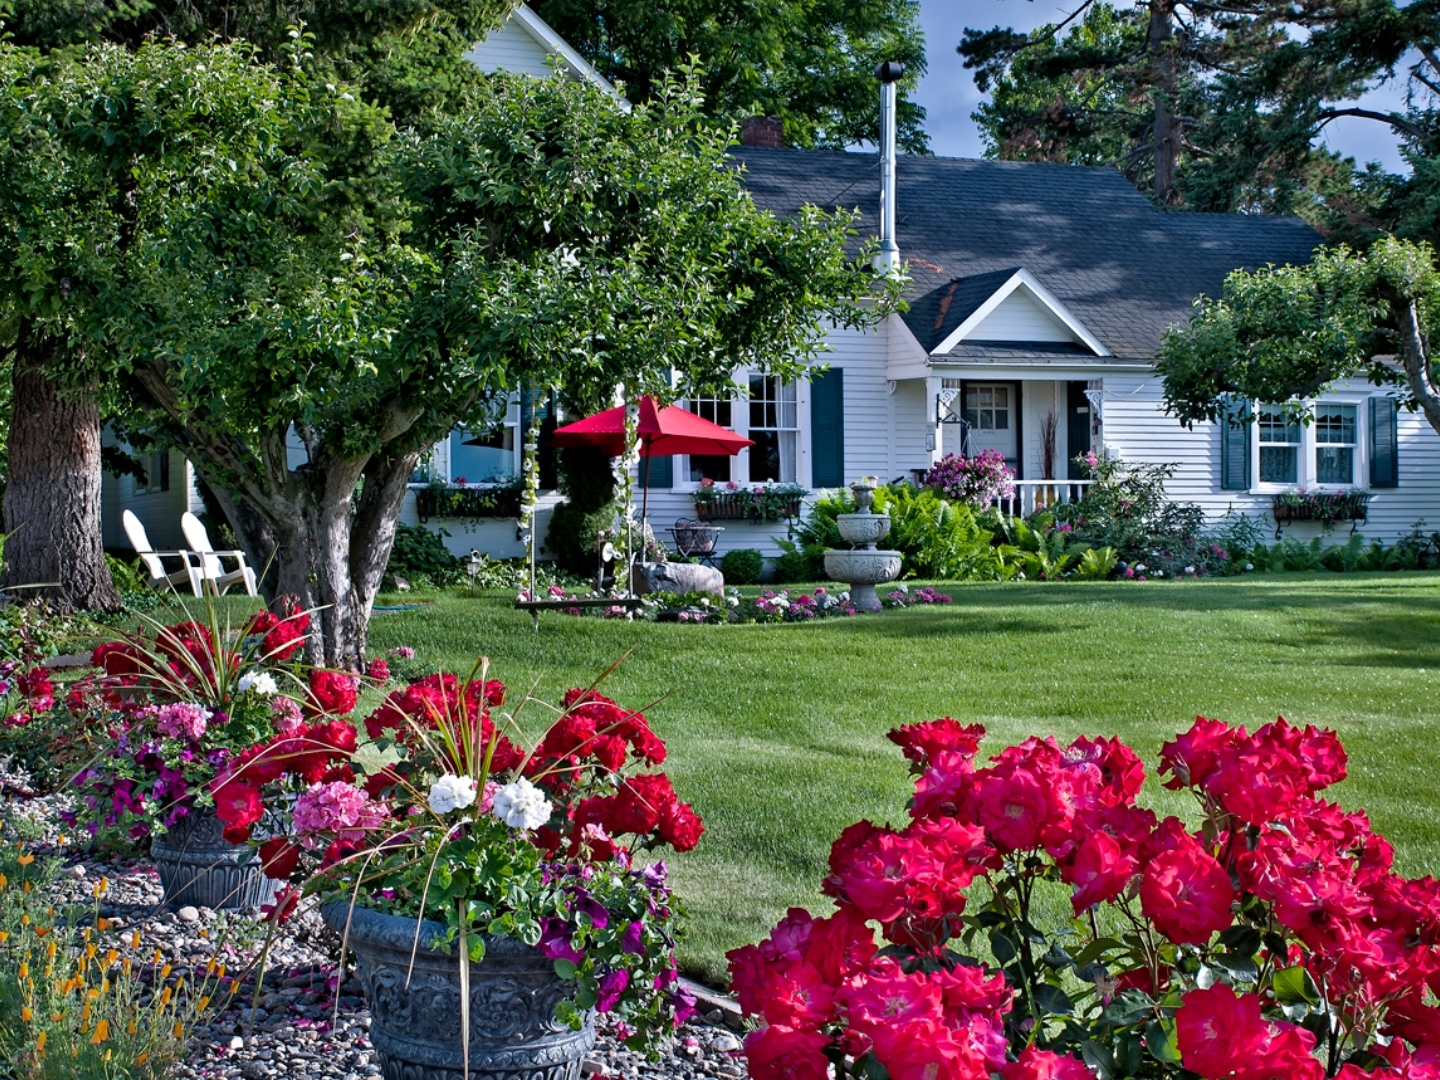 A close up of a flower garden in front of a house at Cozy Rose Bed and Breakfast.